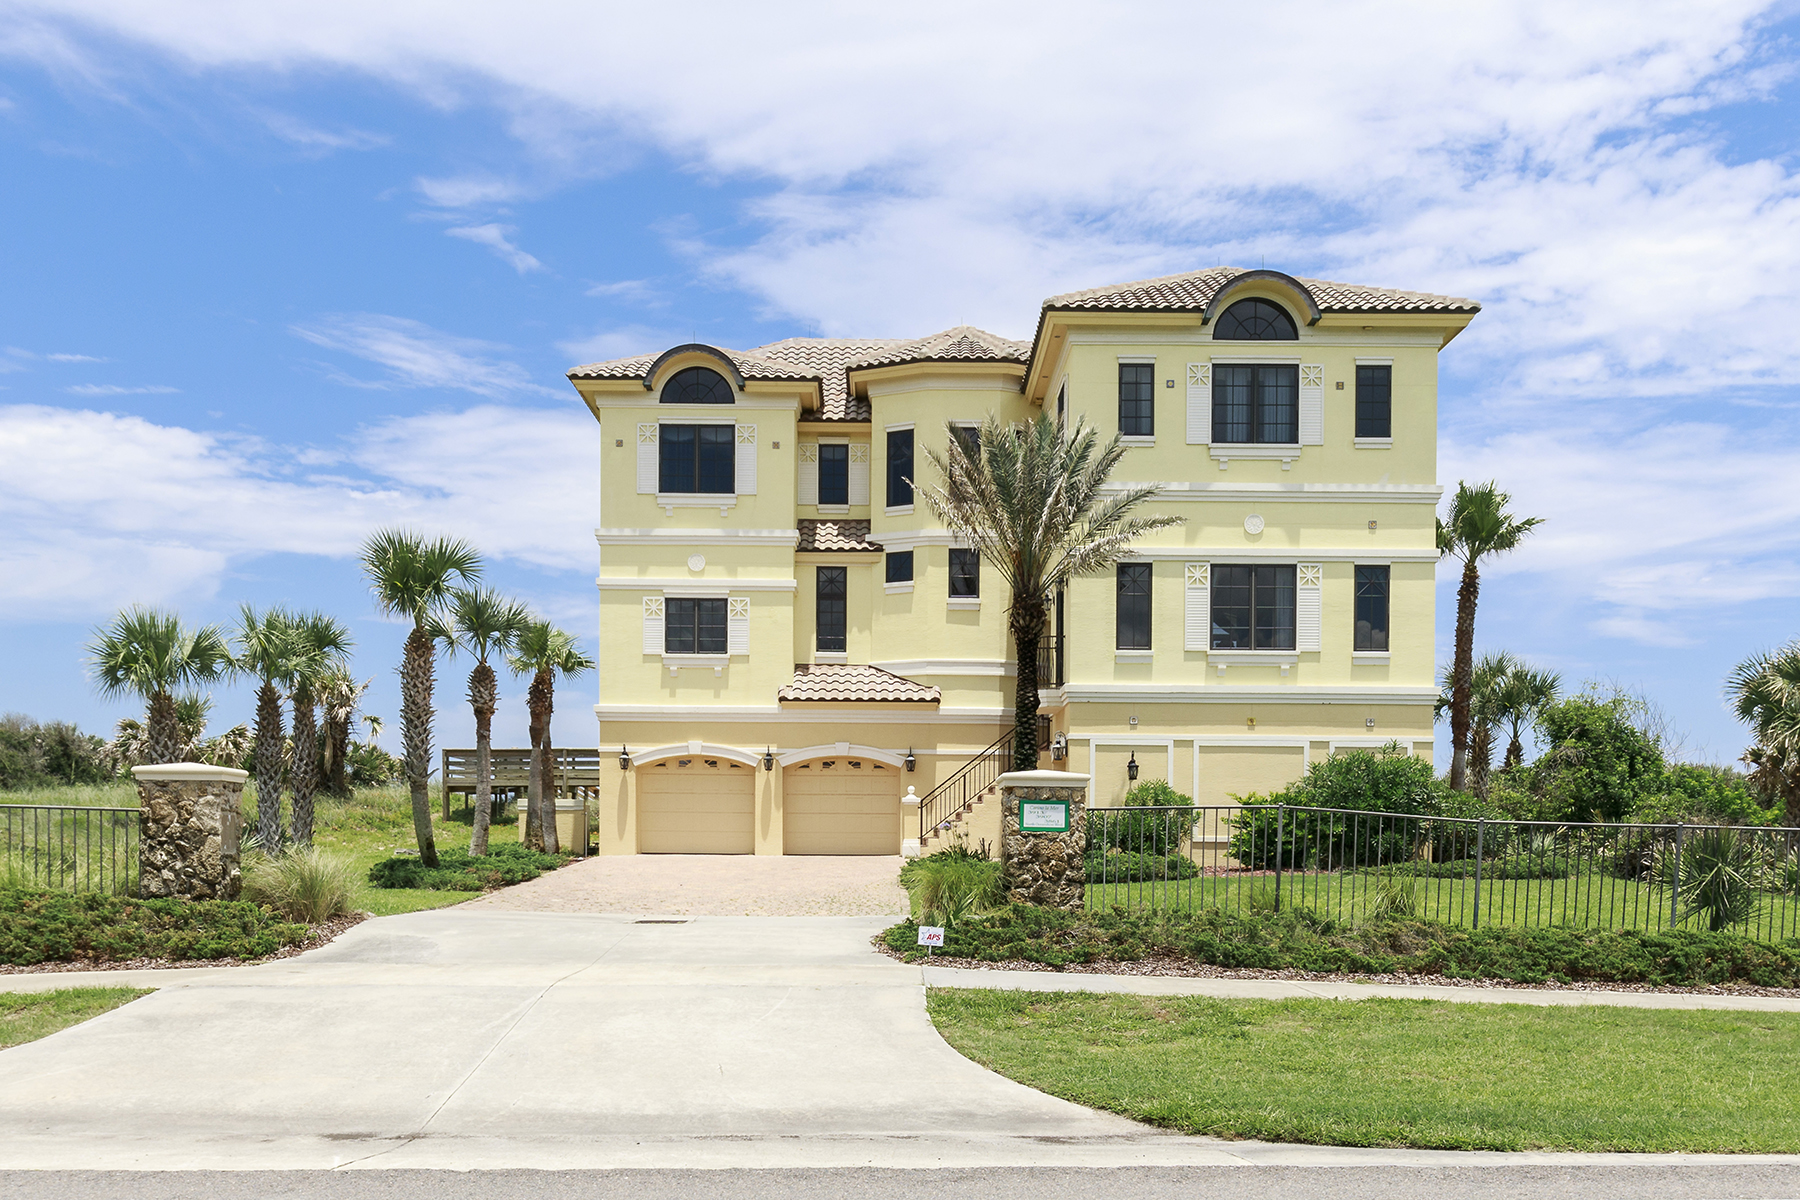 Maison unifamiliale pour l Vente à 3907 N Ocean Shore Blvd , Palm Coast, FL 32137 3907 N Ocean Shore Blvd Palm Coast, Florida 32137 États-Unis